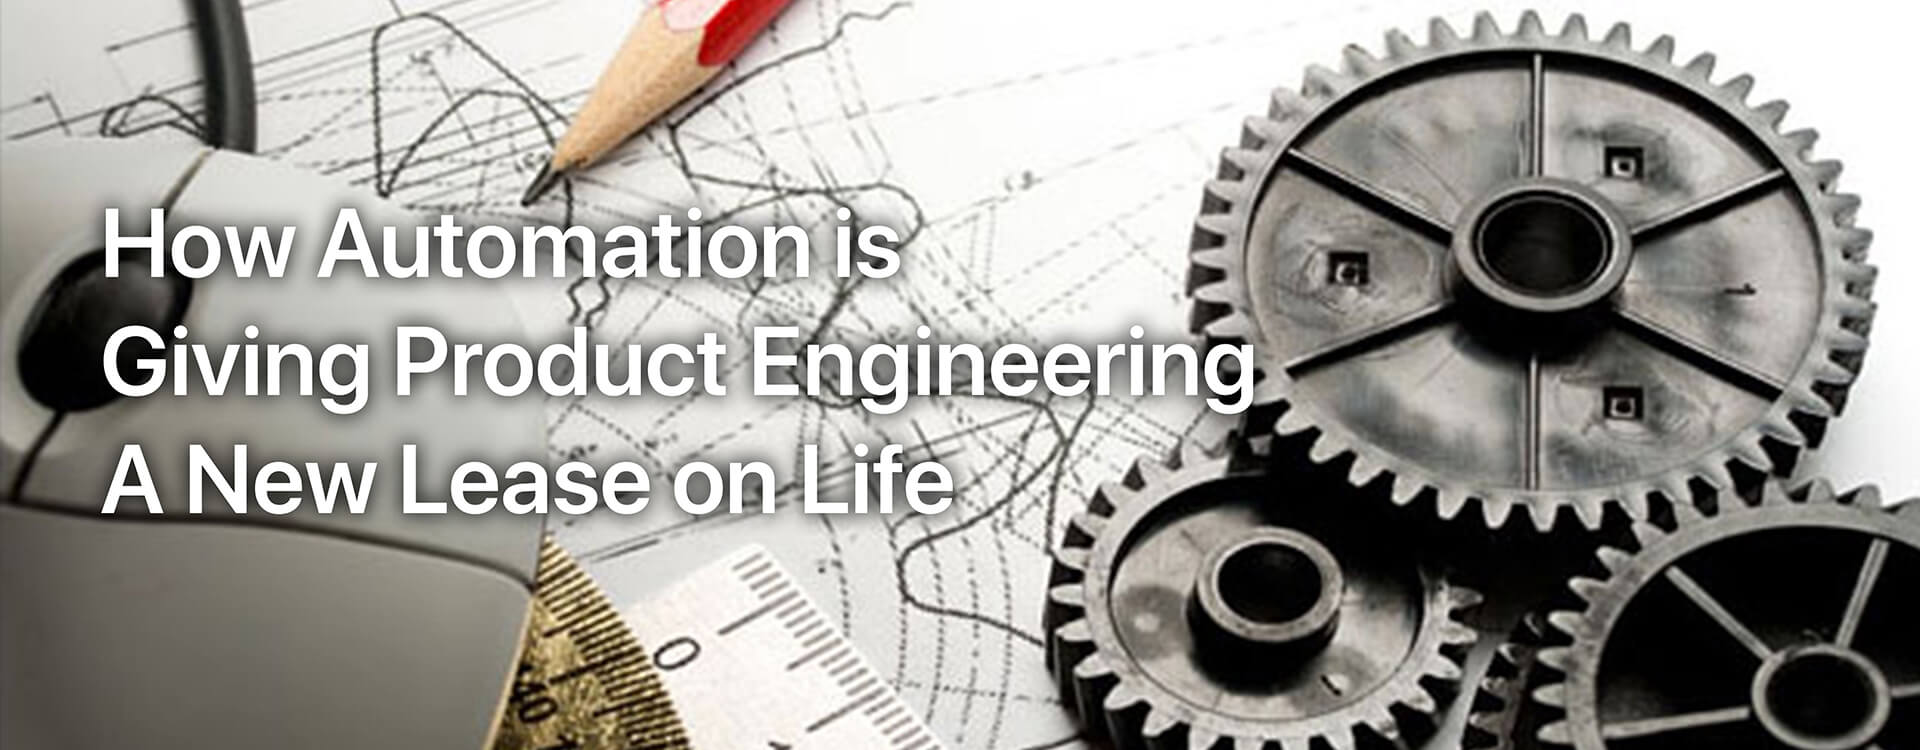 product engineering automation